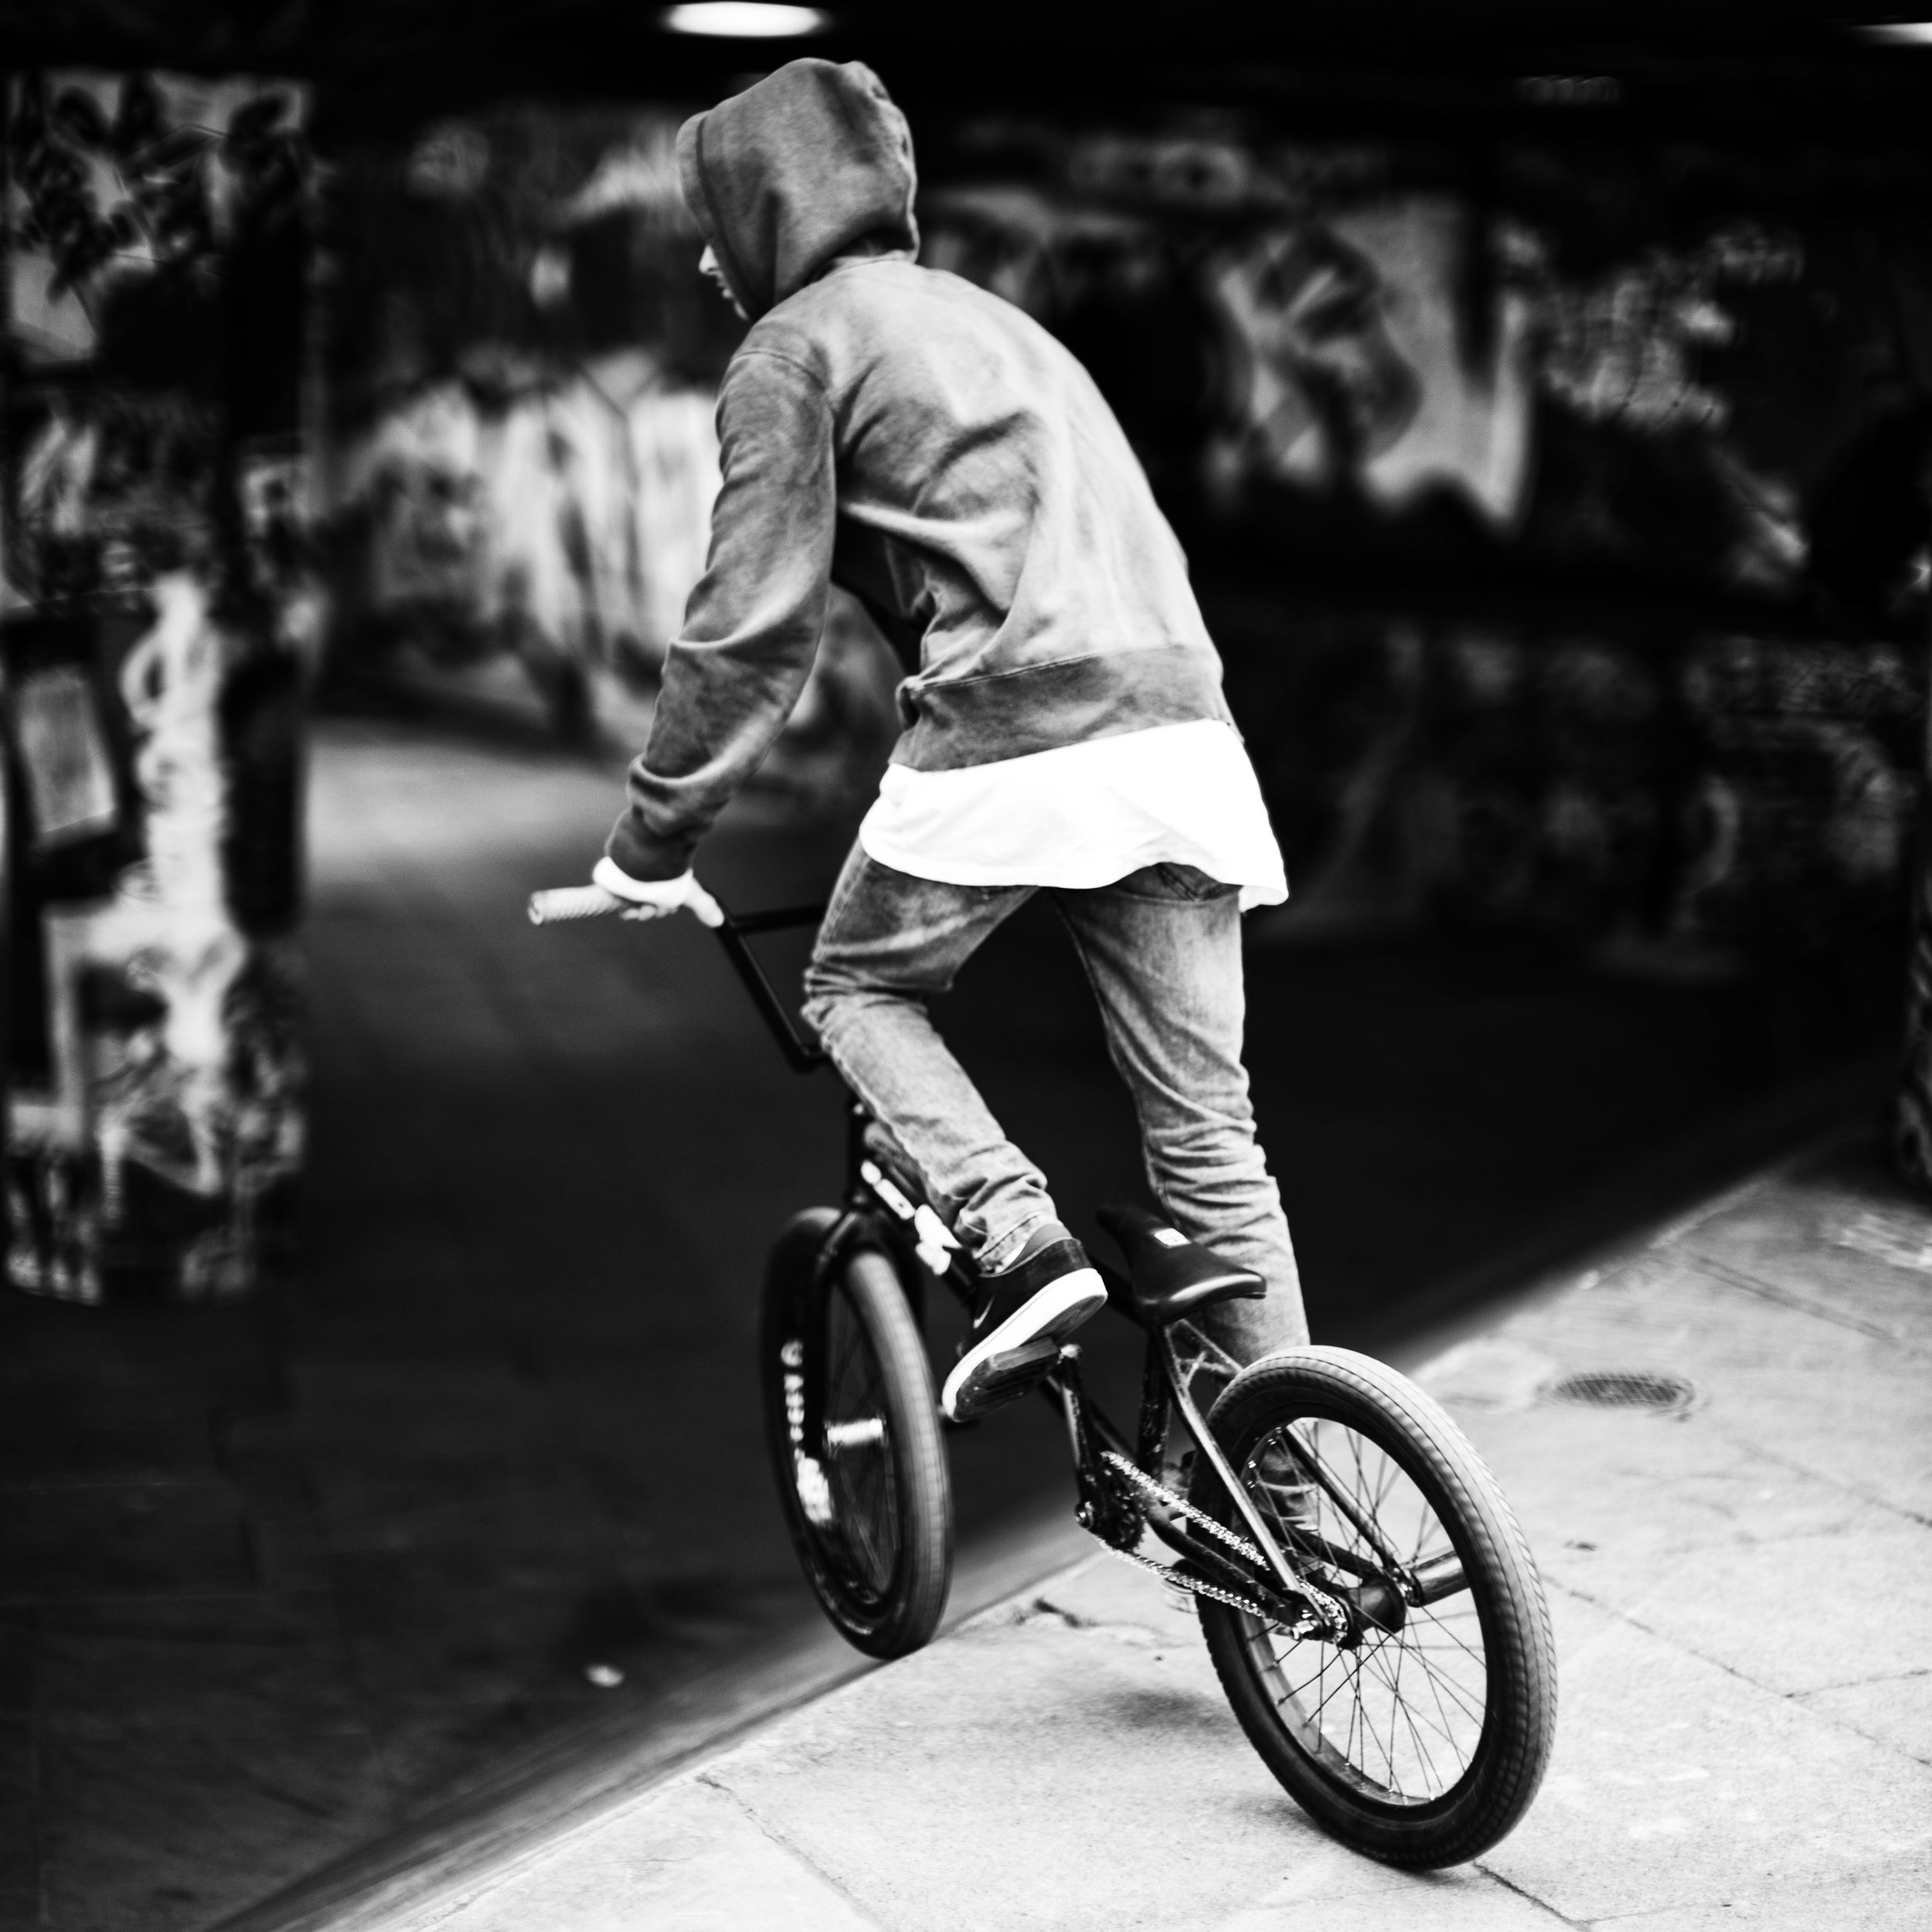 A BMX rider prepares for another trick